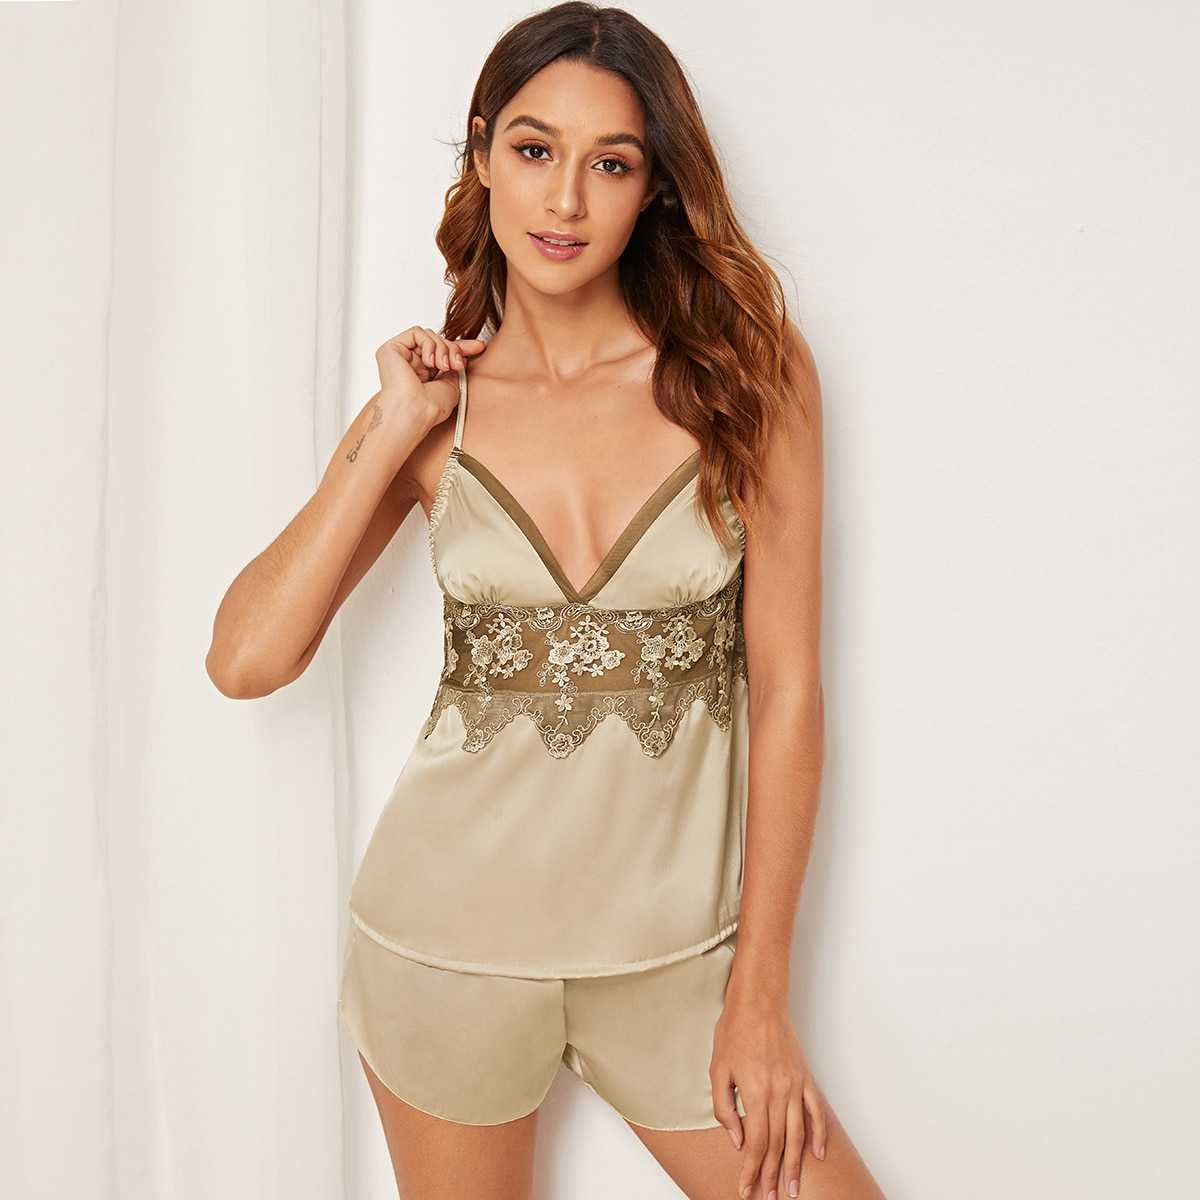 Floral Lace Satin Cami Pajama Set in Brown by ROMWE on GOOFASH